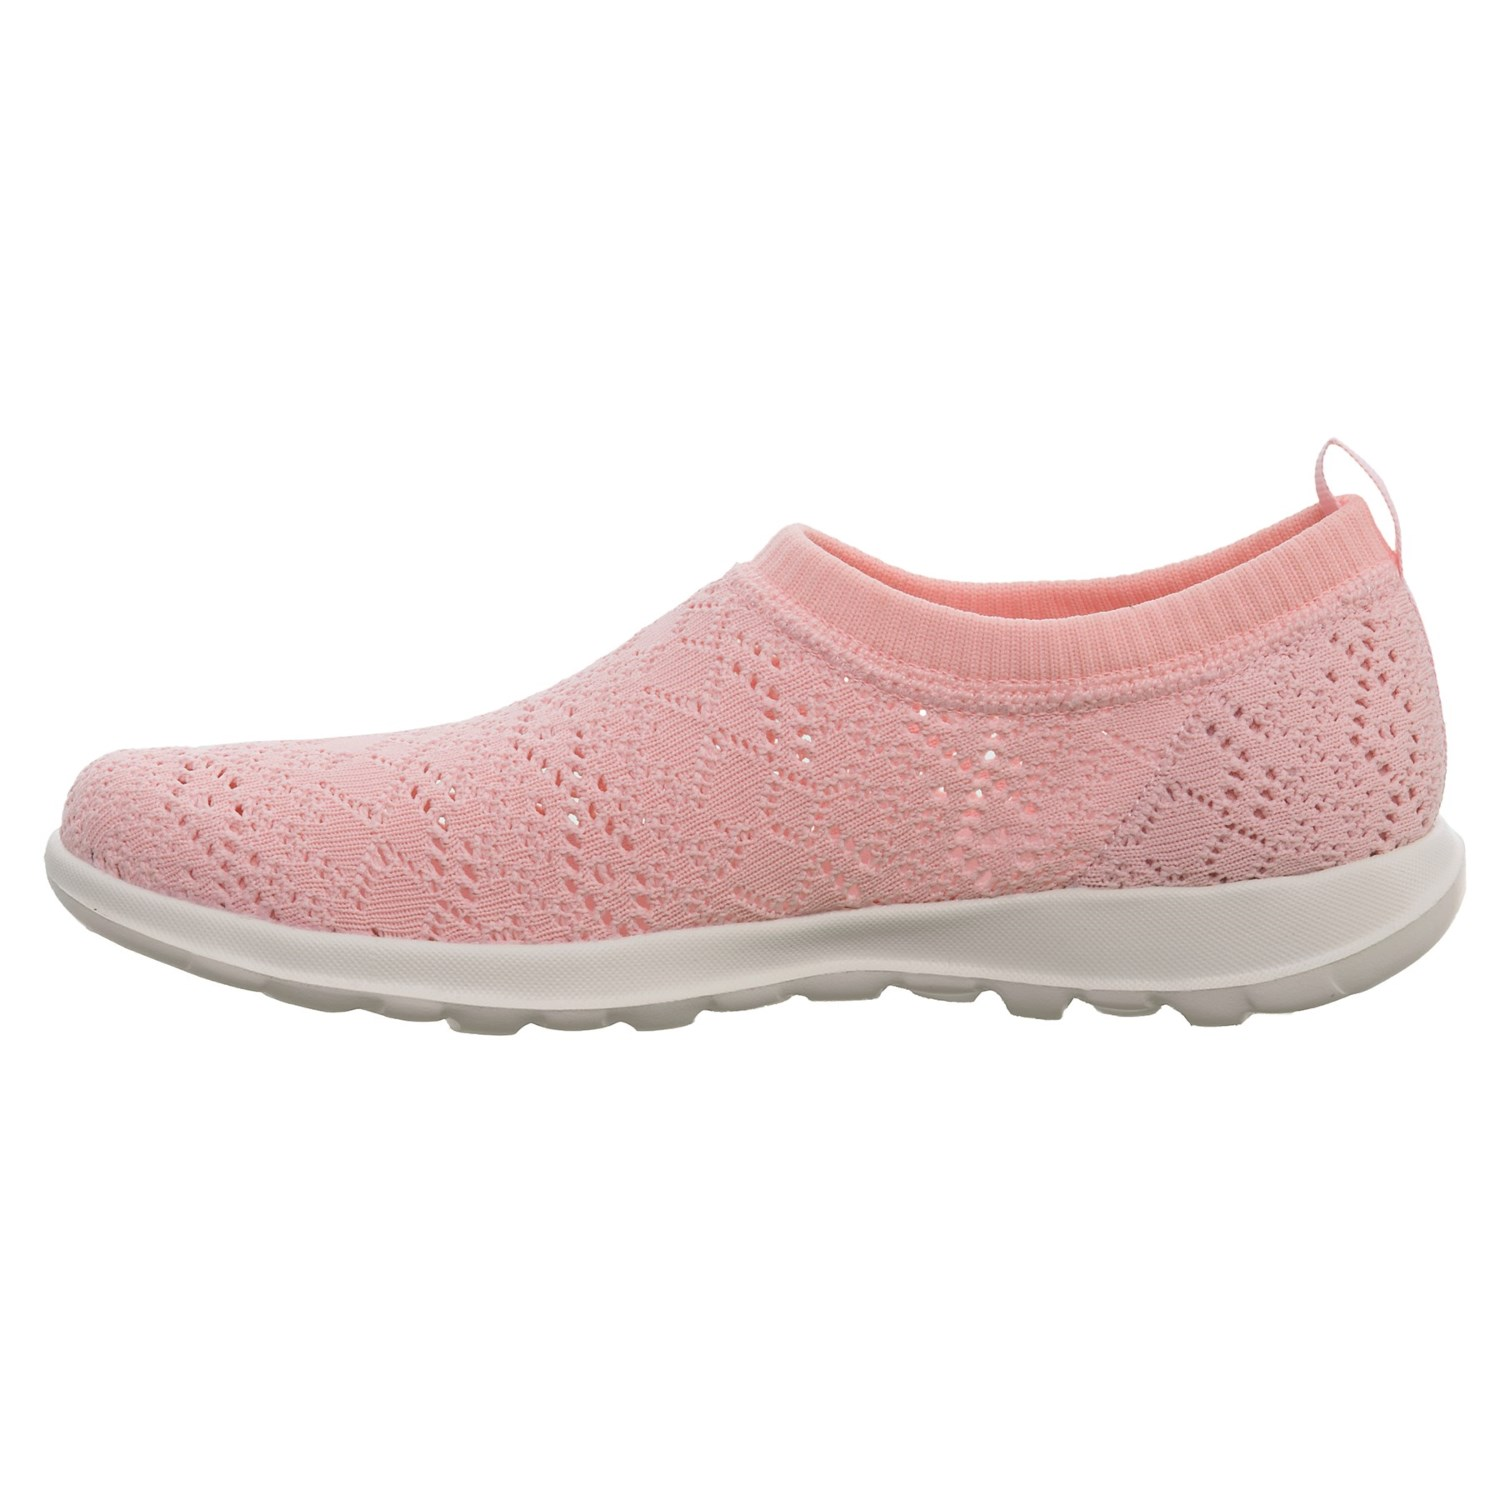 3f0e33138c4 Skechers GOwalk Lite Harmony Sneakers (For Women) - Save 33%